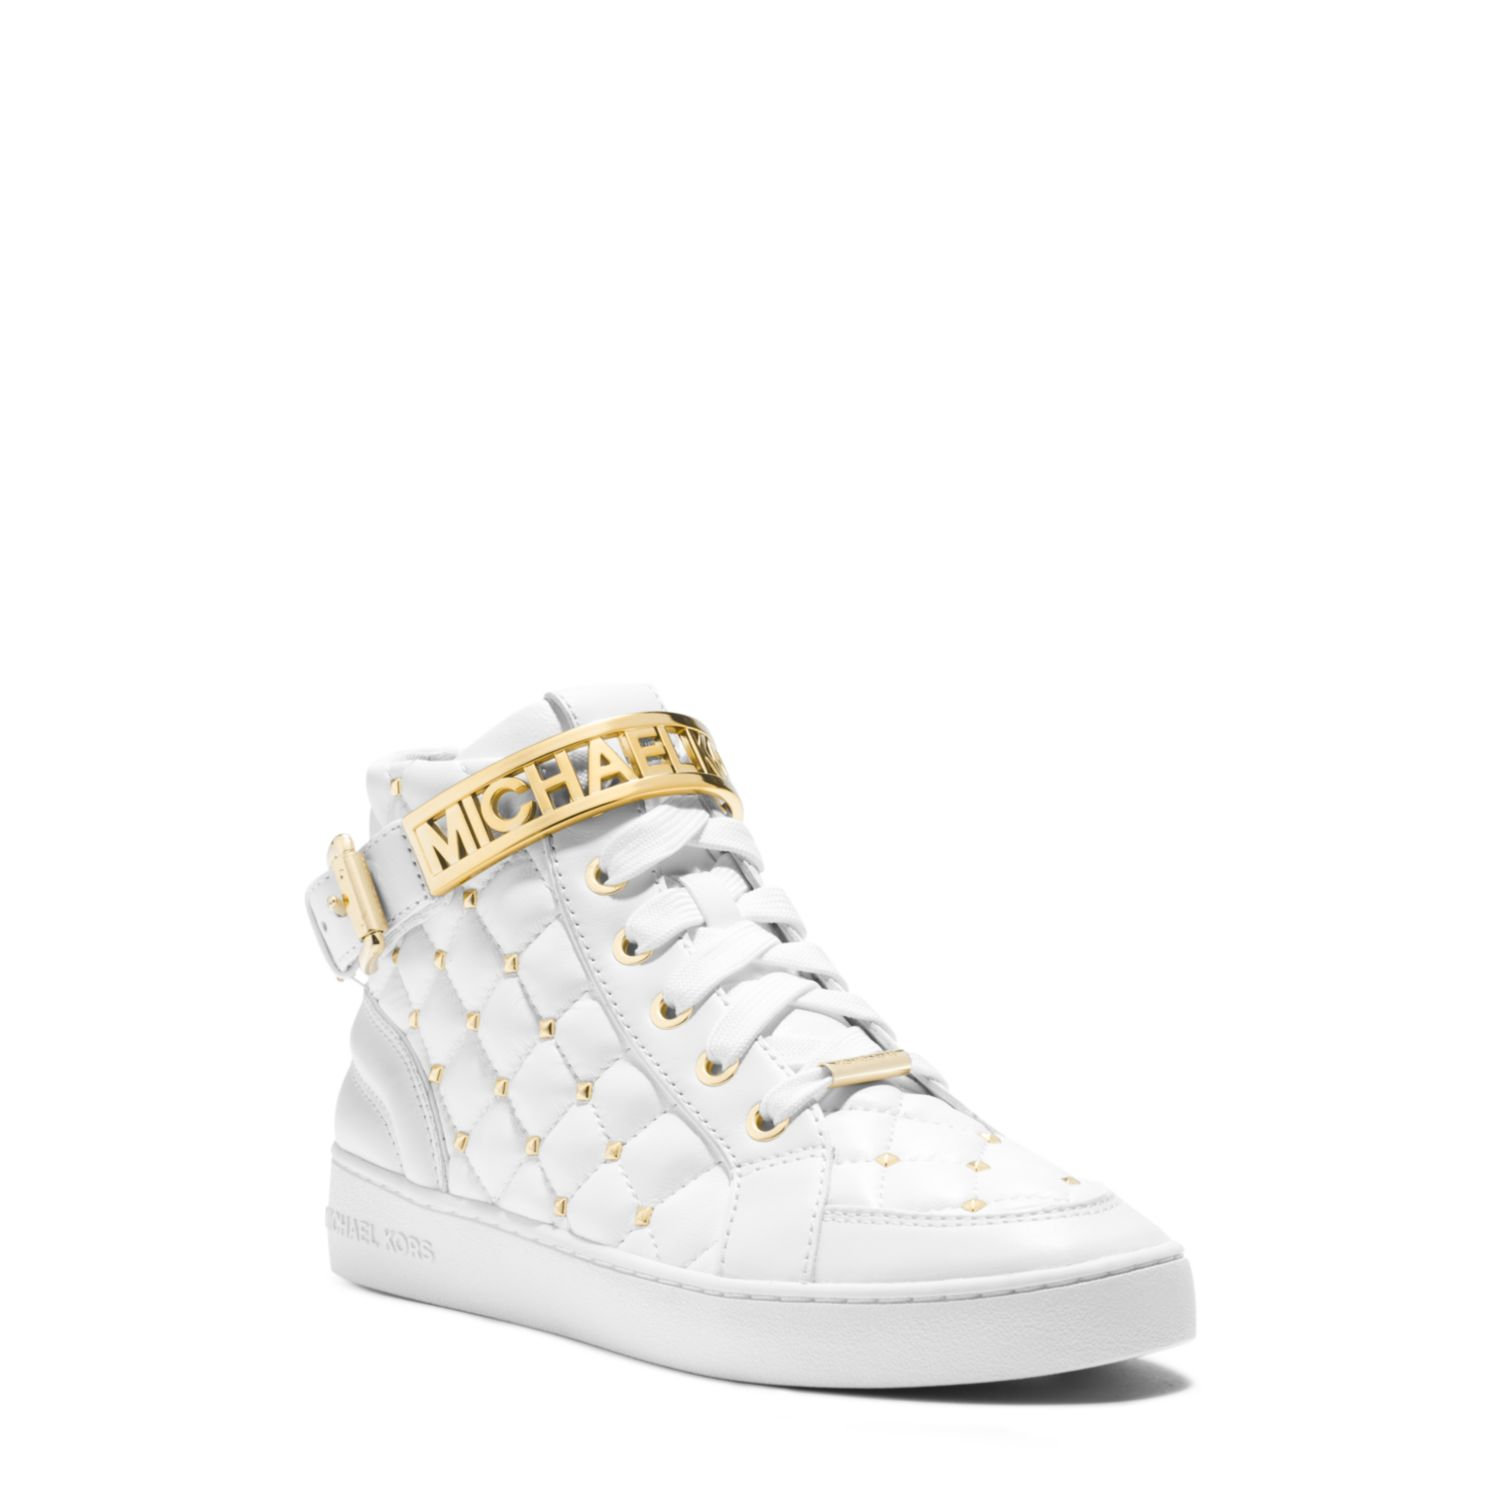 Michael Kors Essex Studded Quilted Leather High Top